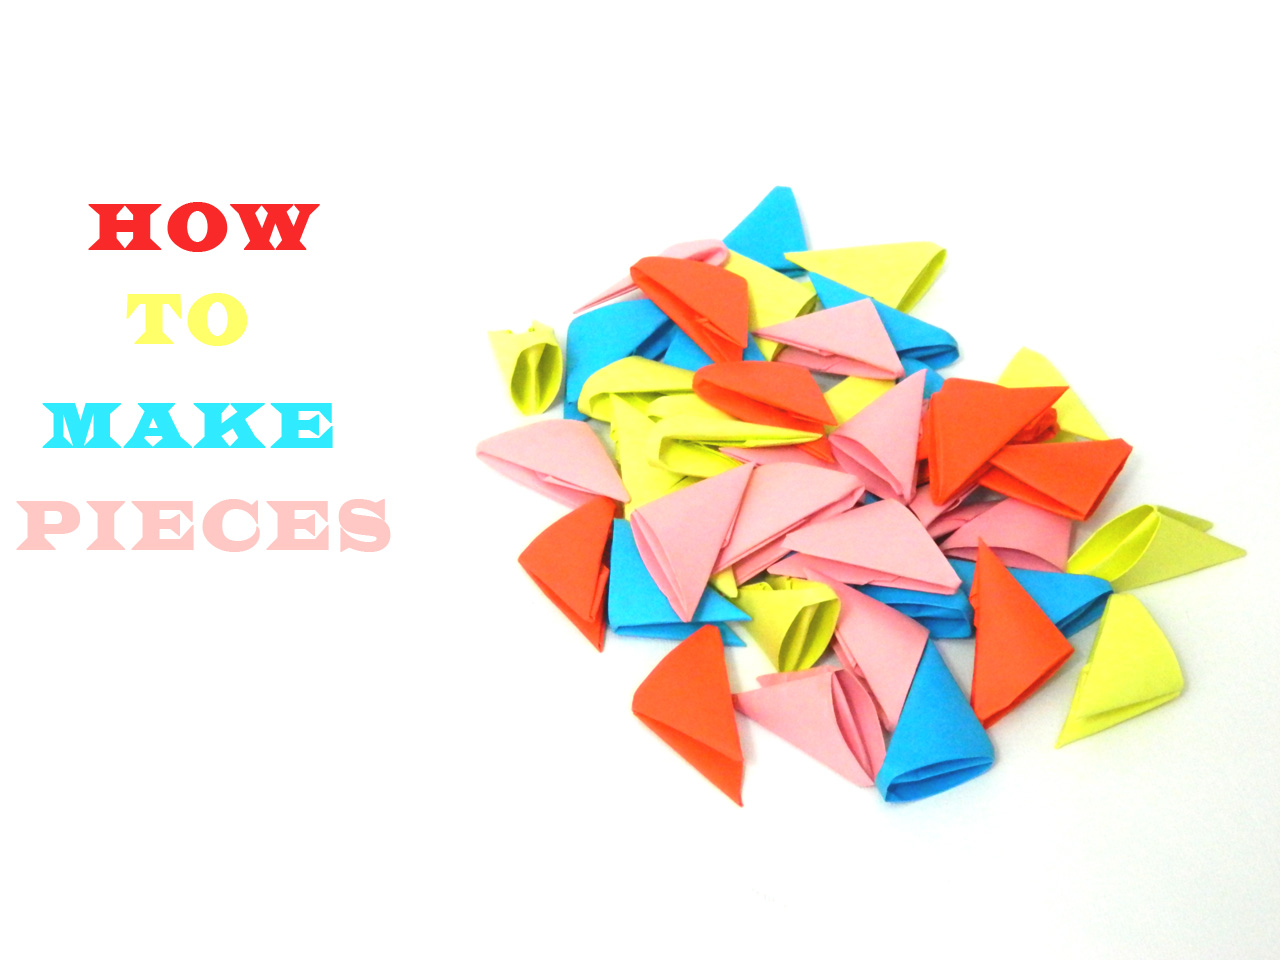 How to make 3D Origami Pieces (HD)